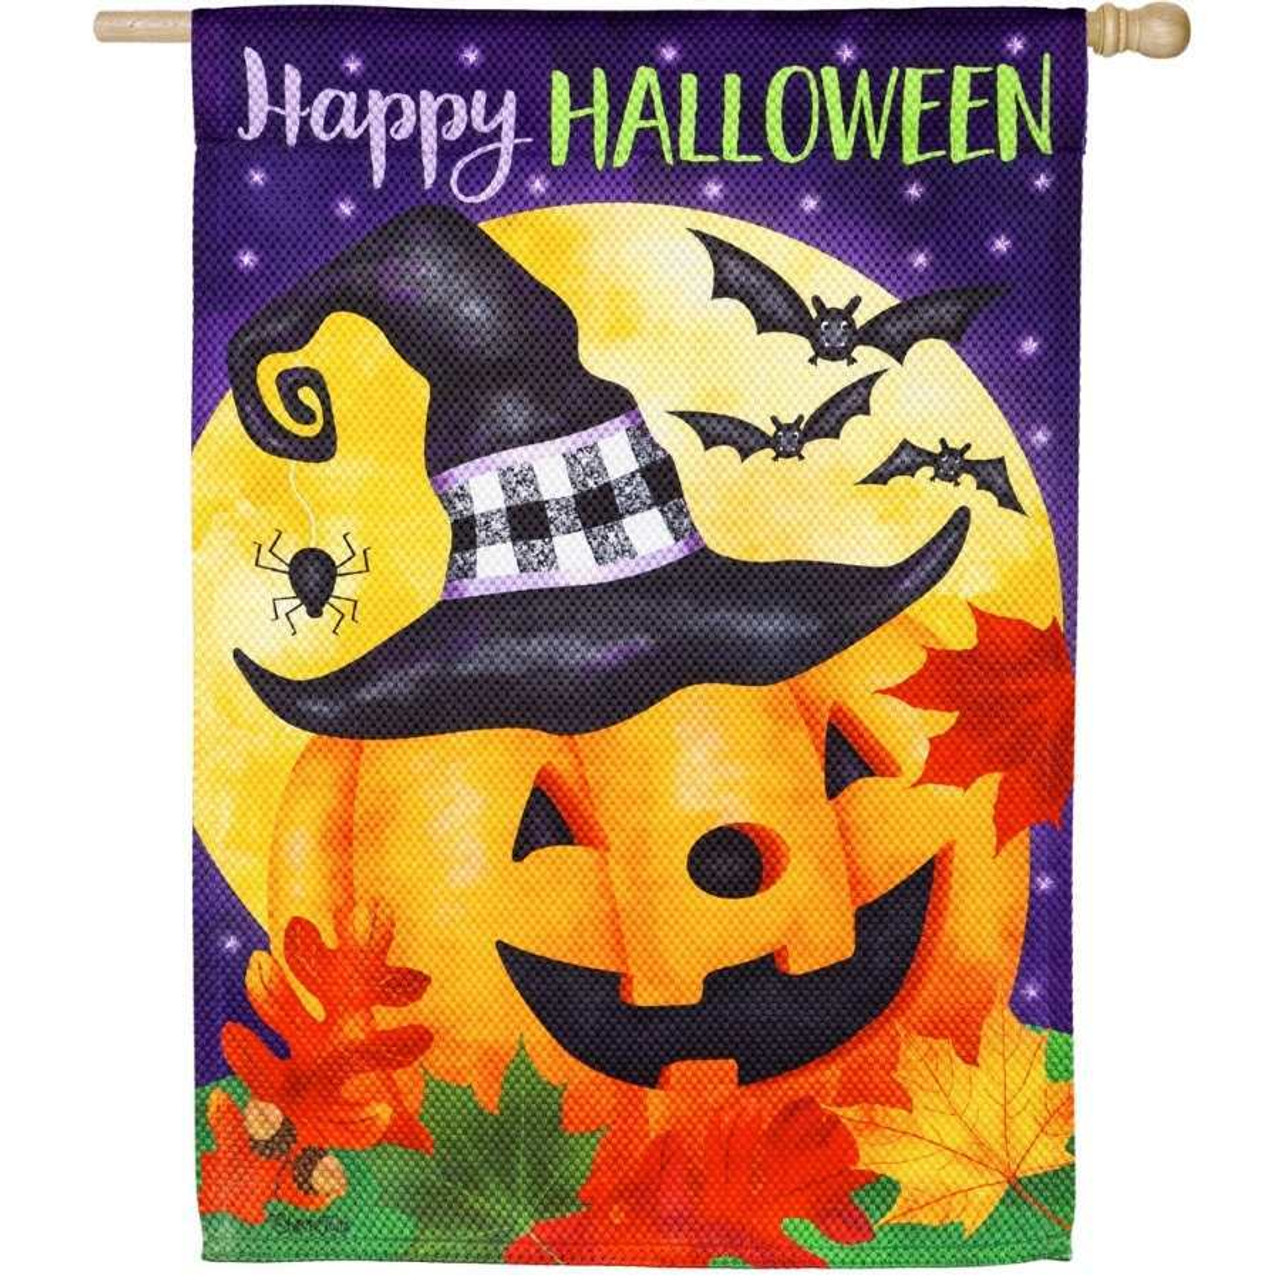 """A textured flag with a jack-o-lantern wearing a witches hat. A spider hangs from the hat. Fall-colored leaves are on the ground. A full yellow moon and bats are behind the pumpkin. The background is purple with white stars, and """"Happy Halloween"""" is written at the top."""